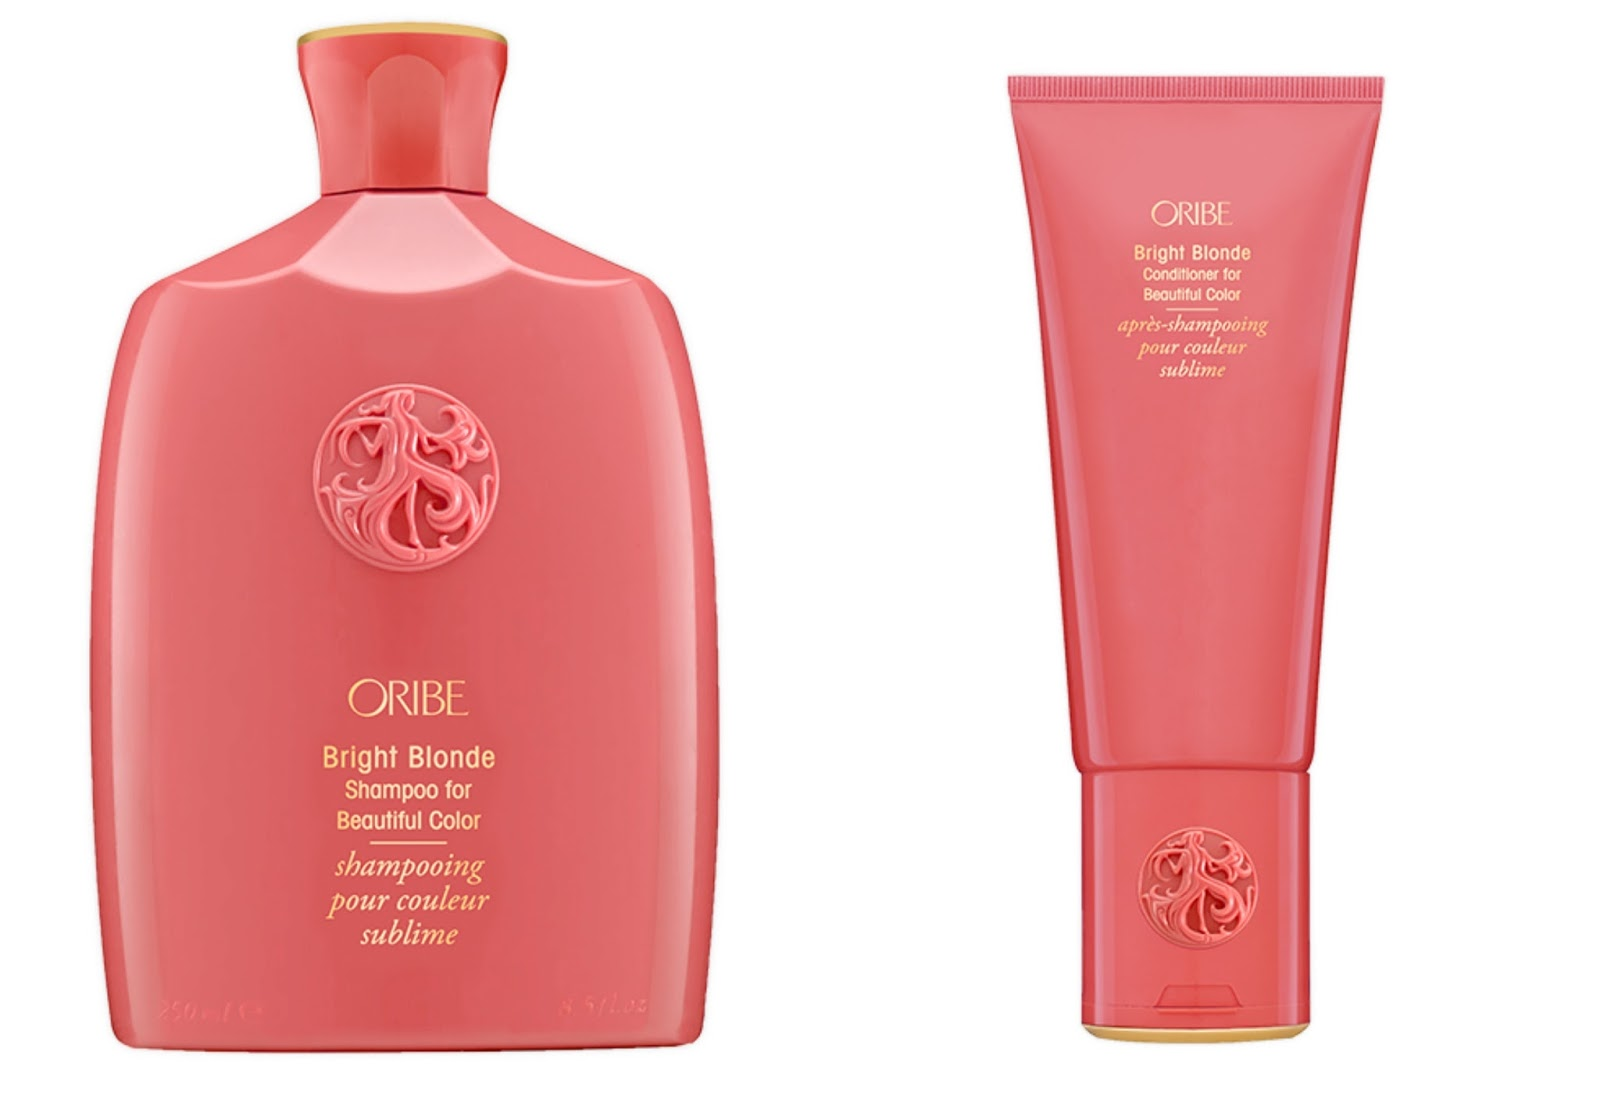 Oribe Bright Blonde shampoo and conditioner